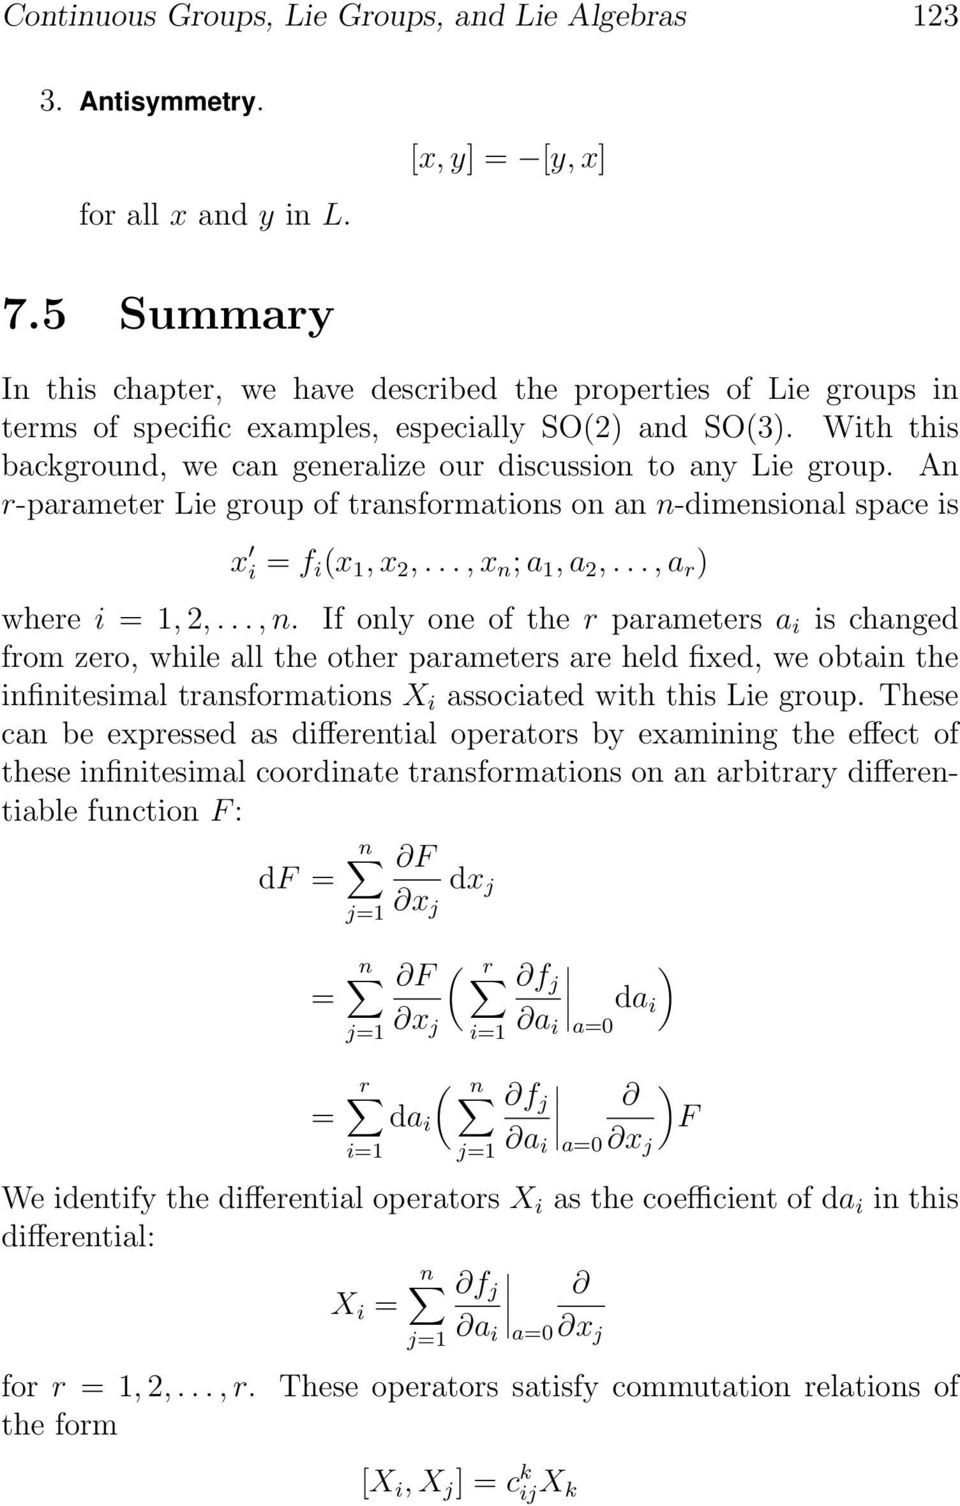 With this background, we can generalize our discussion to any Lie group. An r-parameter Lie group of transformations on an n-dimensional space is x i = f i (x 1,x 2,...,x n ; a 1,a 2,.